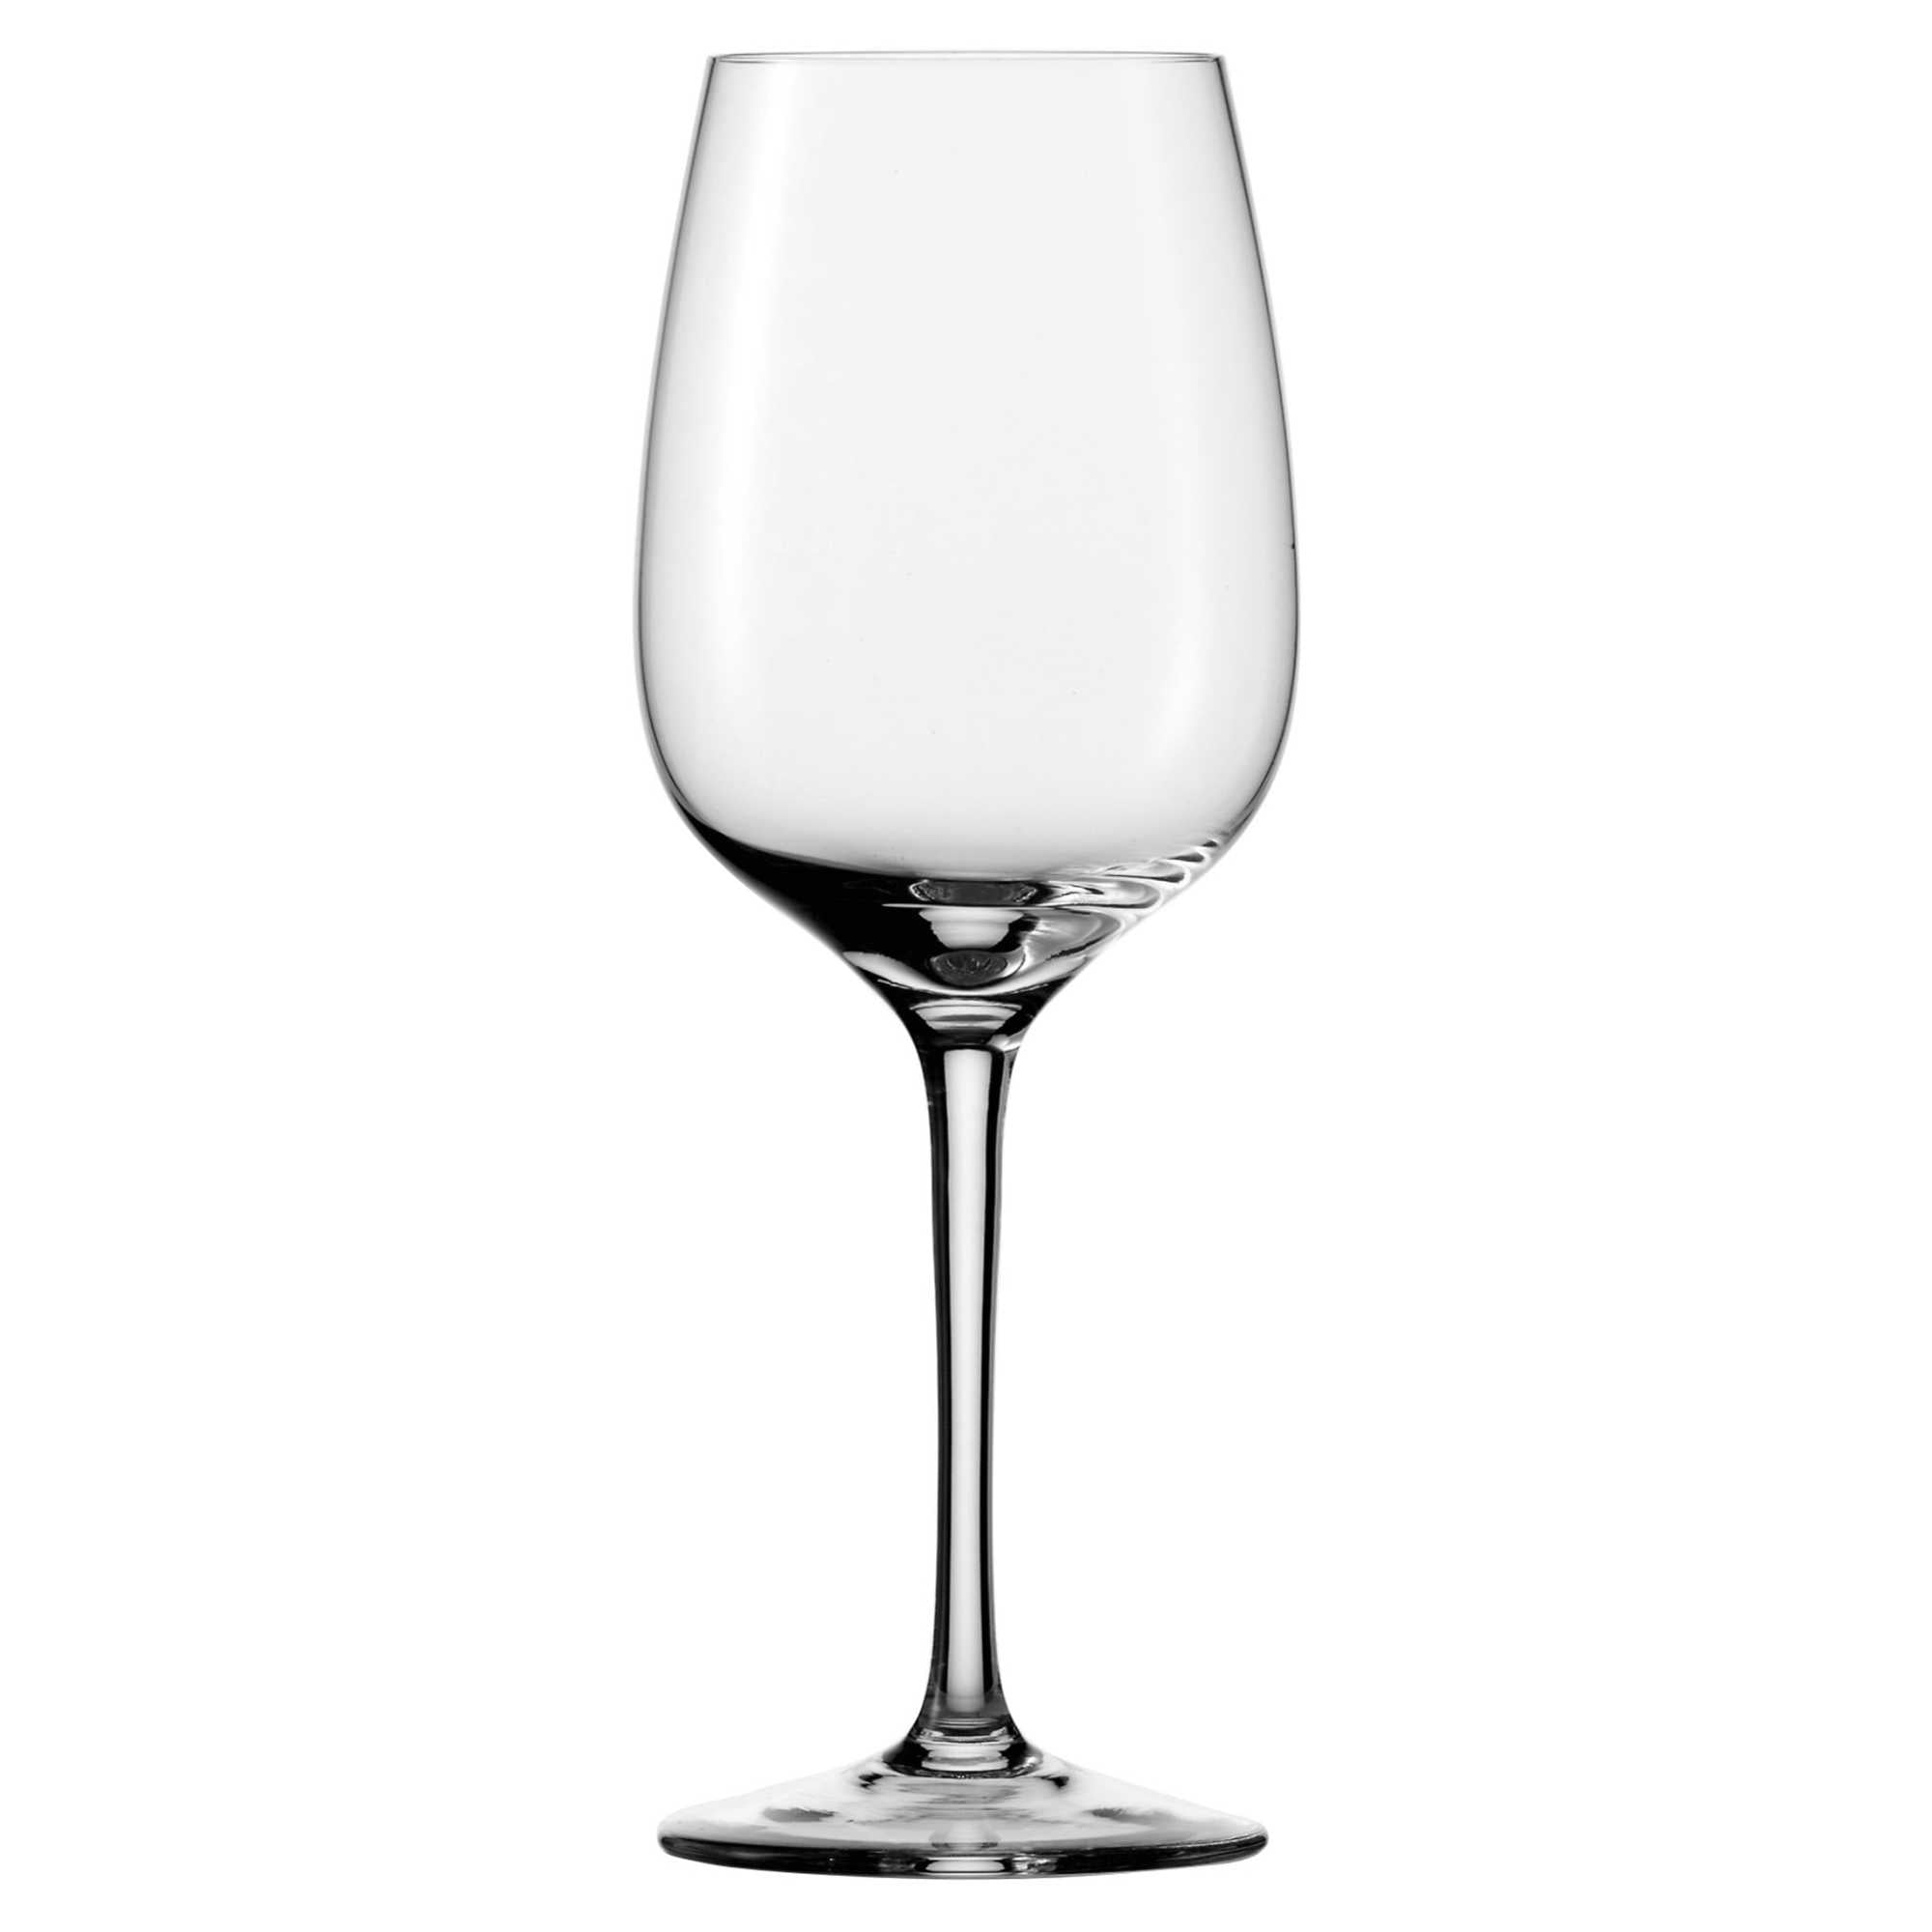 Eisch Superior Sensis Plus Chardonnay Glasses (Set of 2)